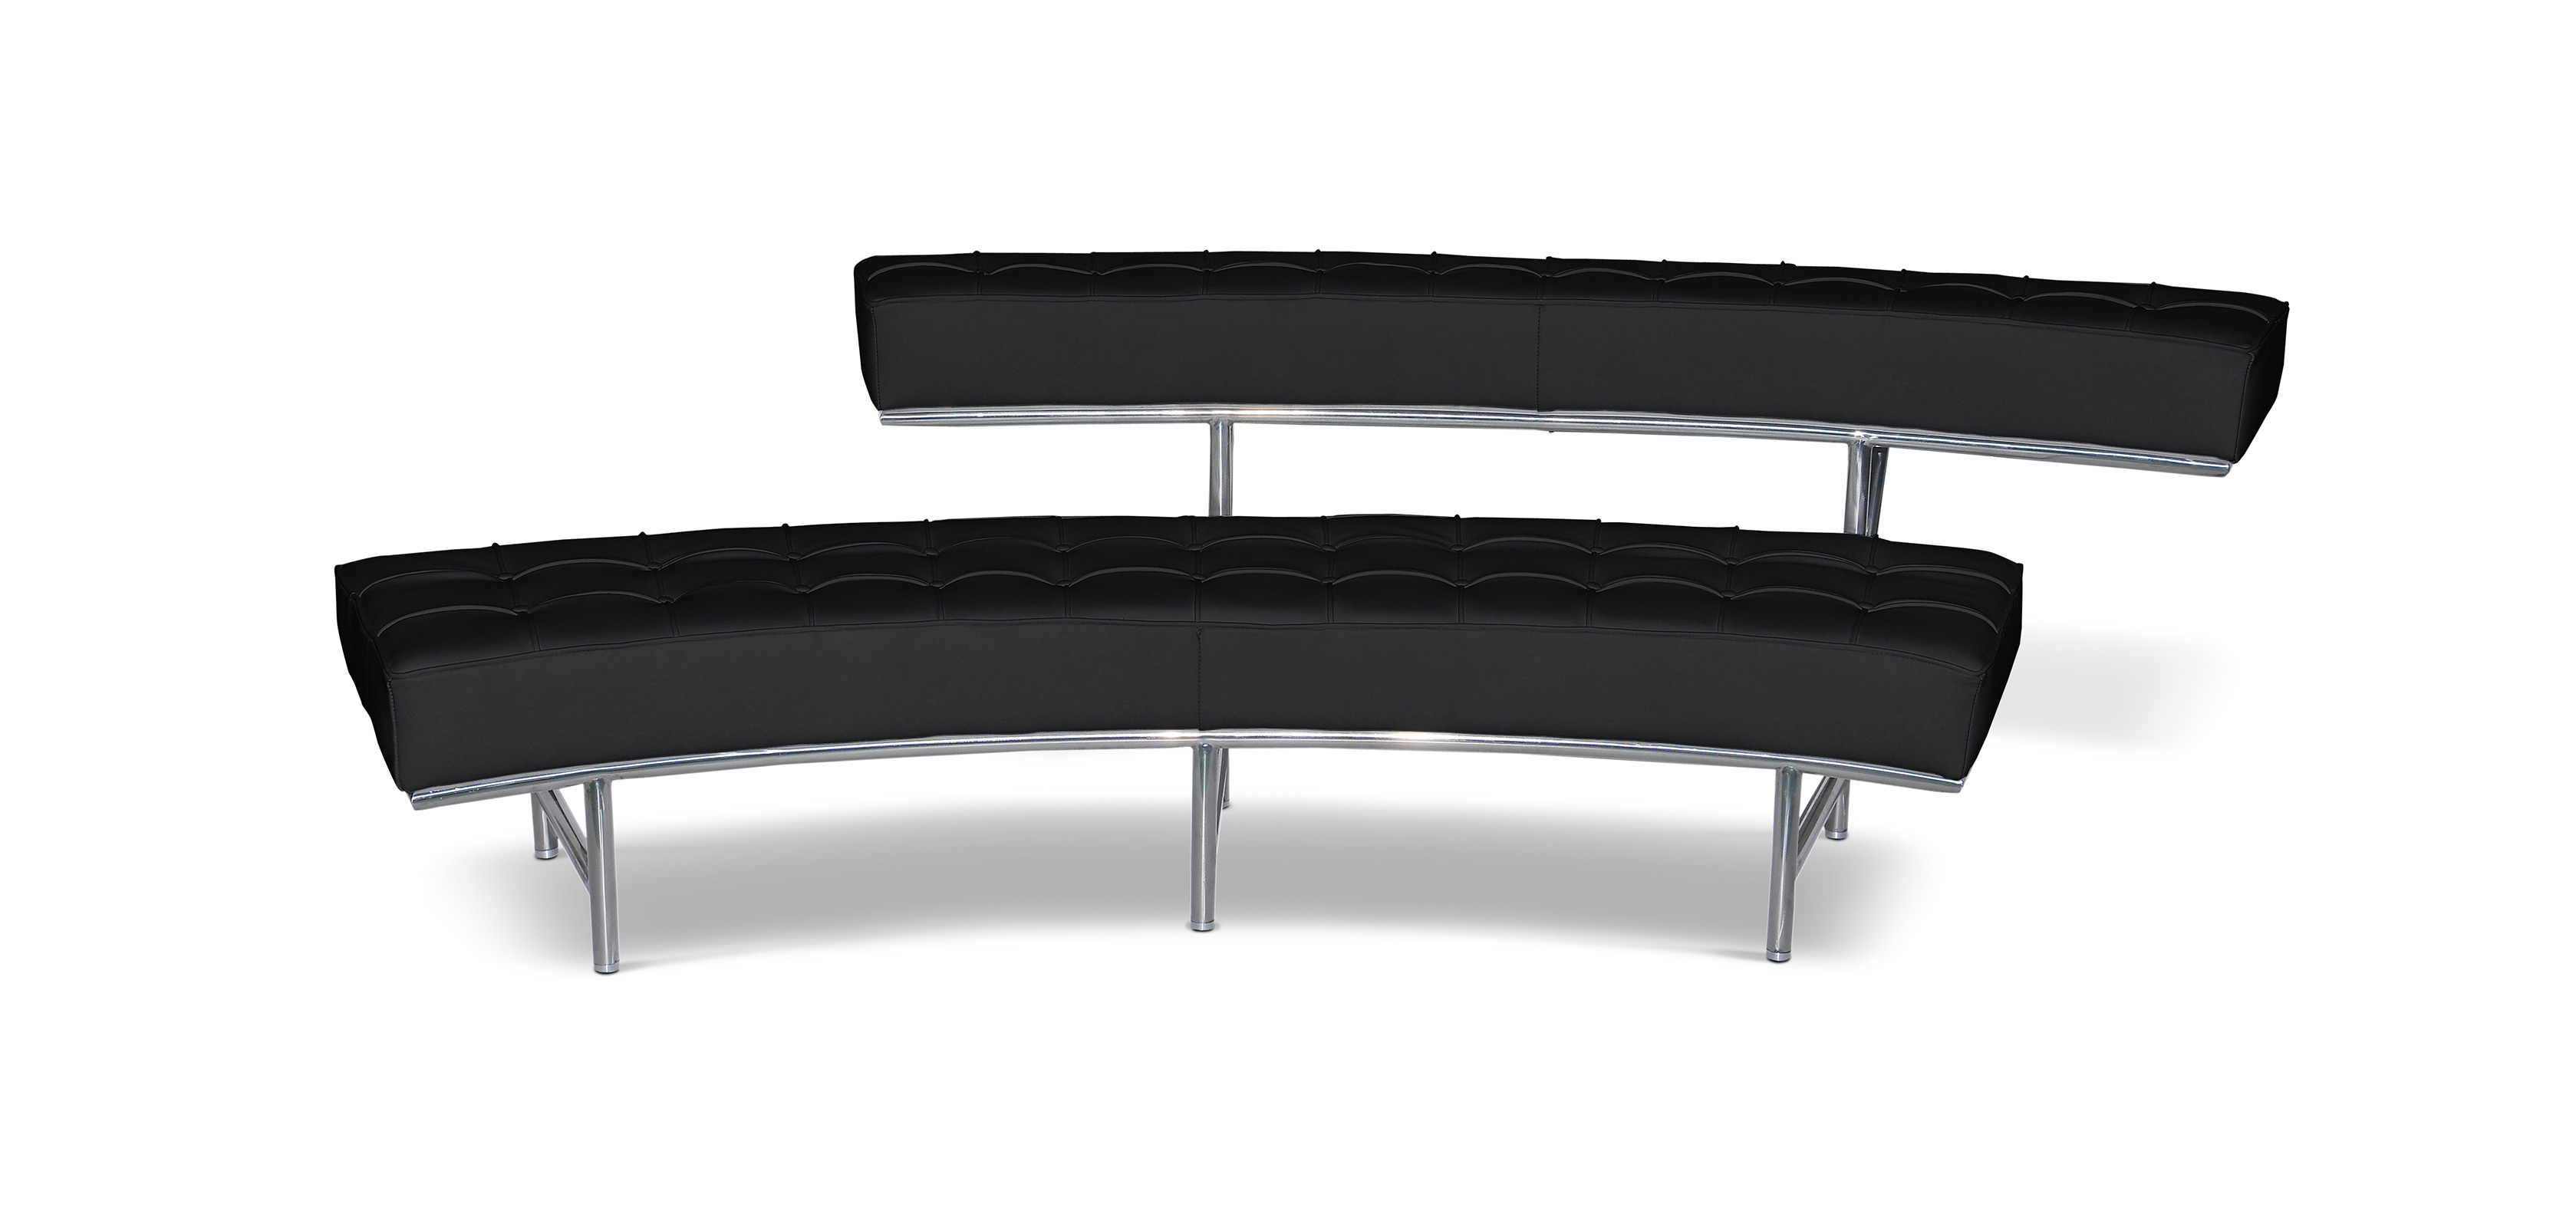 banc canap monte carlo 2 style eileen gray simili. Black Bedroom Furniture Sets. Home Design Ideas